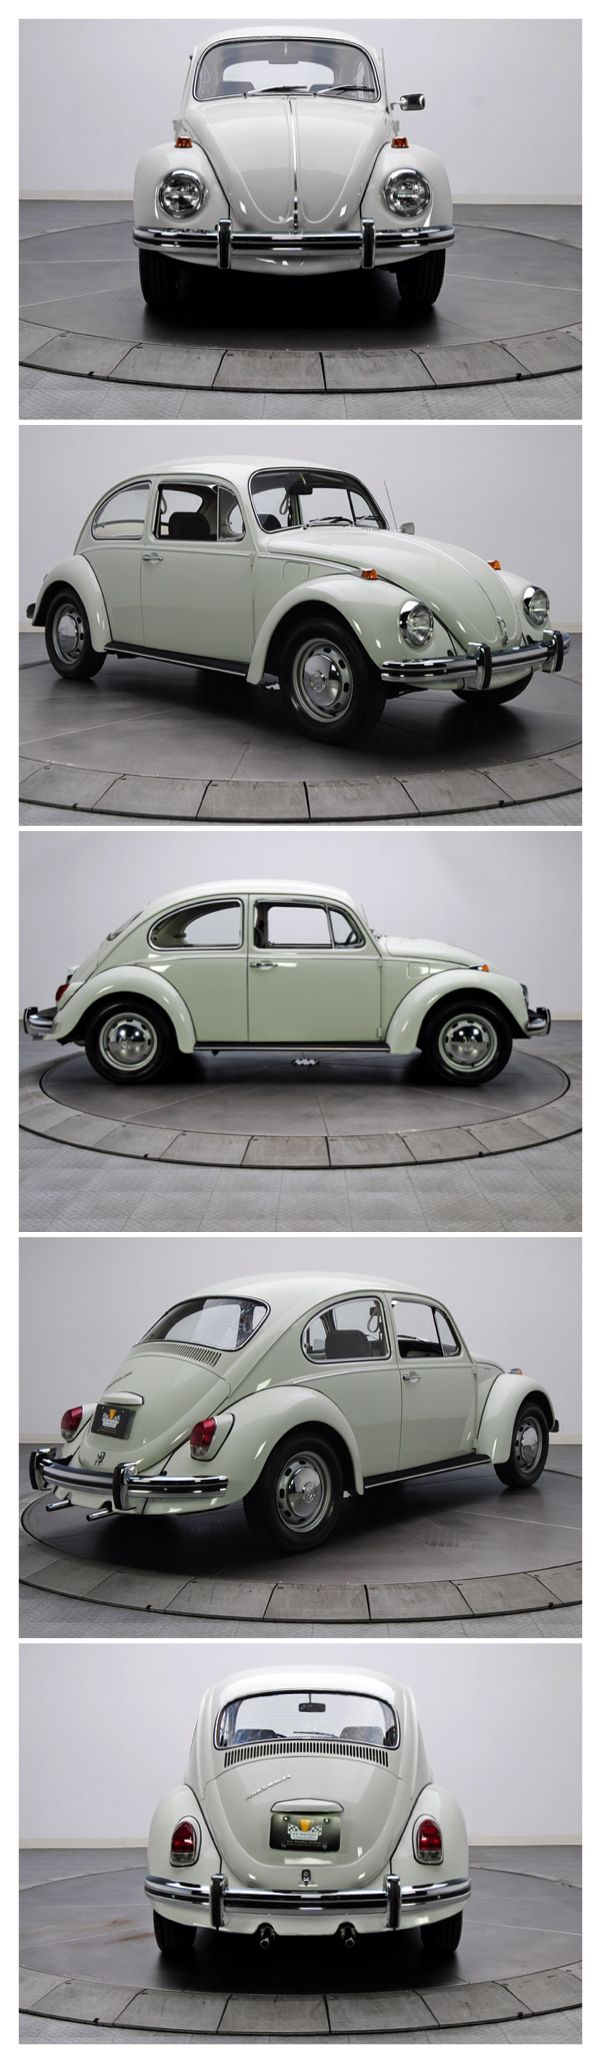 1969 VW Beetle. Mine was in Battleship Grey, first car I owed- paid £250.00 and it cost me £490.00 to insure it! That was when I was 19.